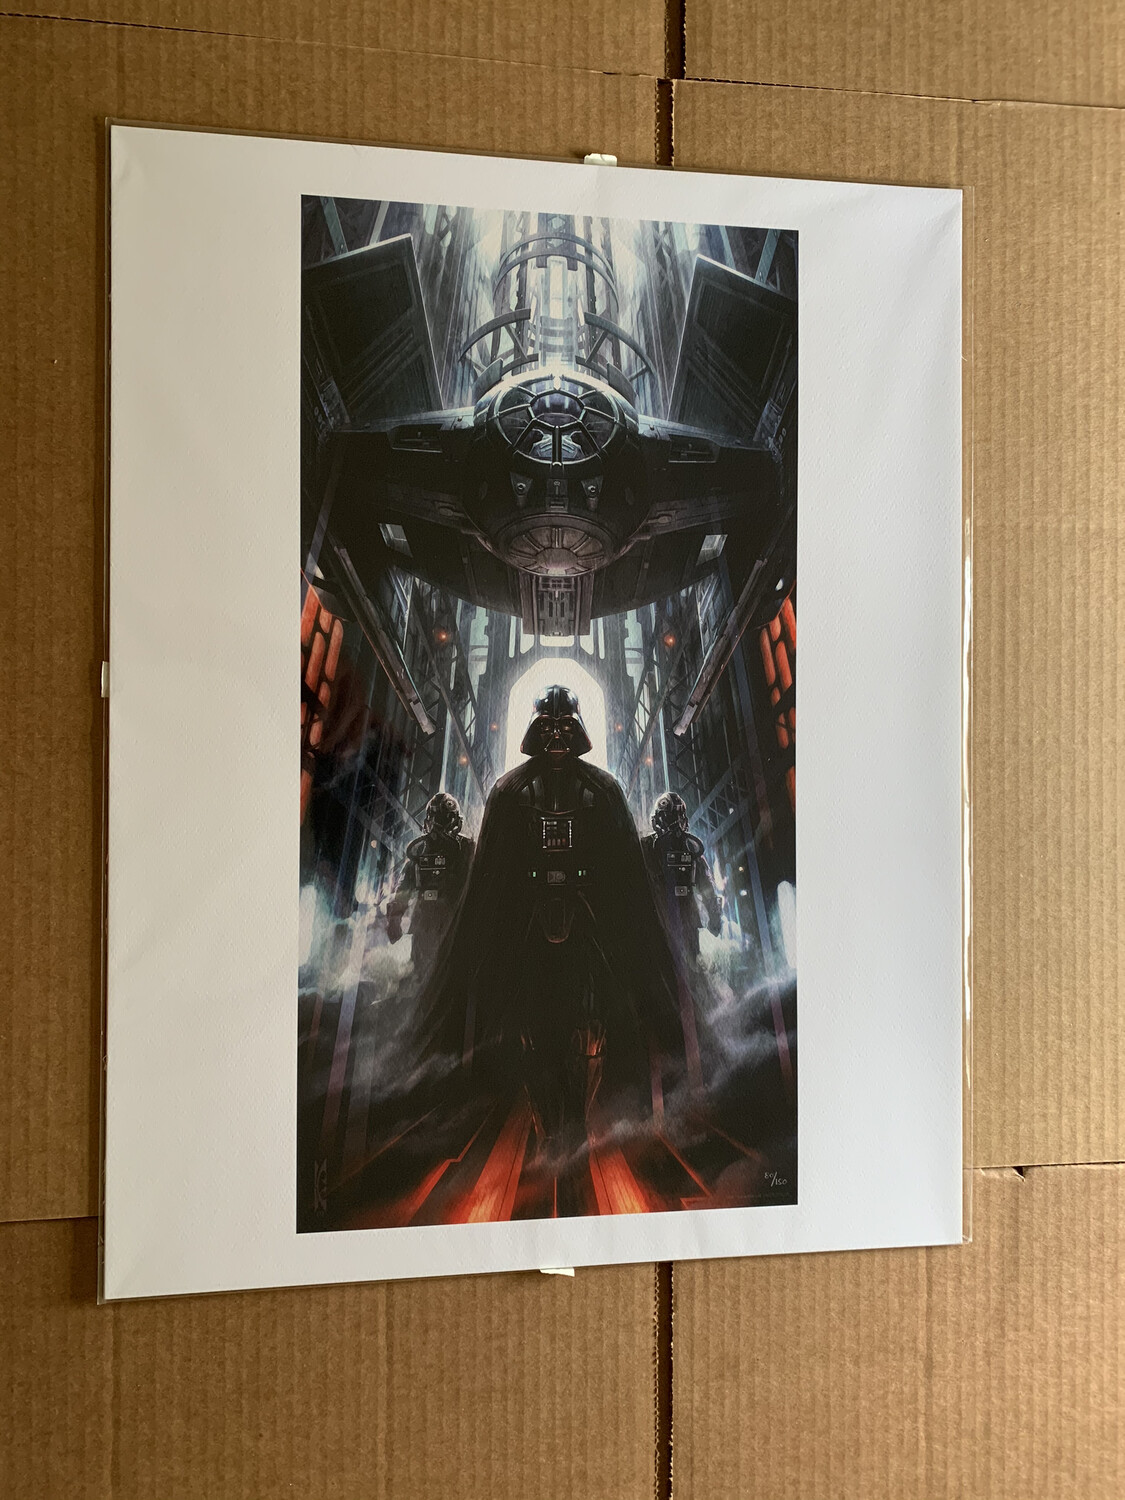 MACHINES OF DOMINION #80 OF 150 BY RAYMOND SWANLAND WITH FREE SIGNED DARTH VADER PHOTO